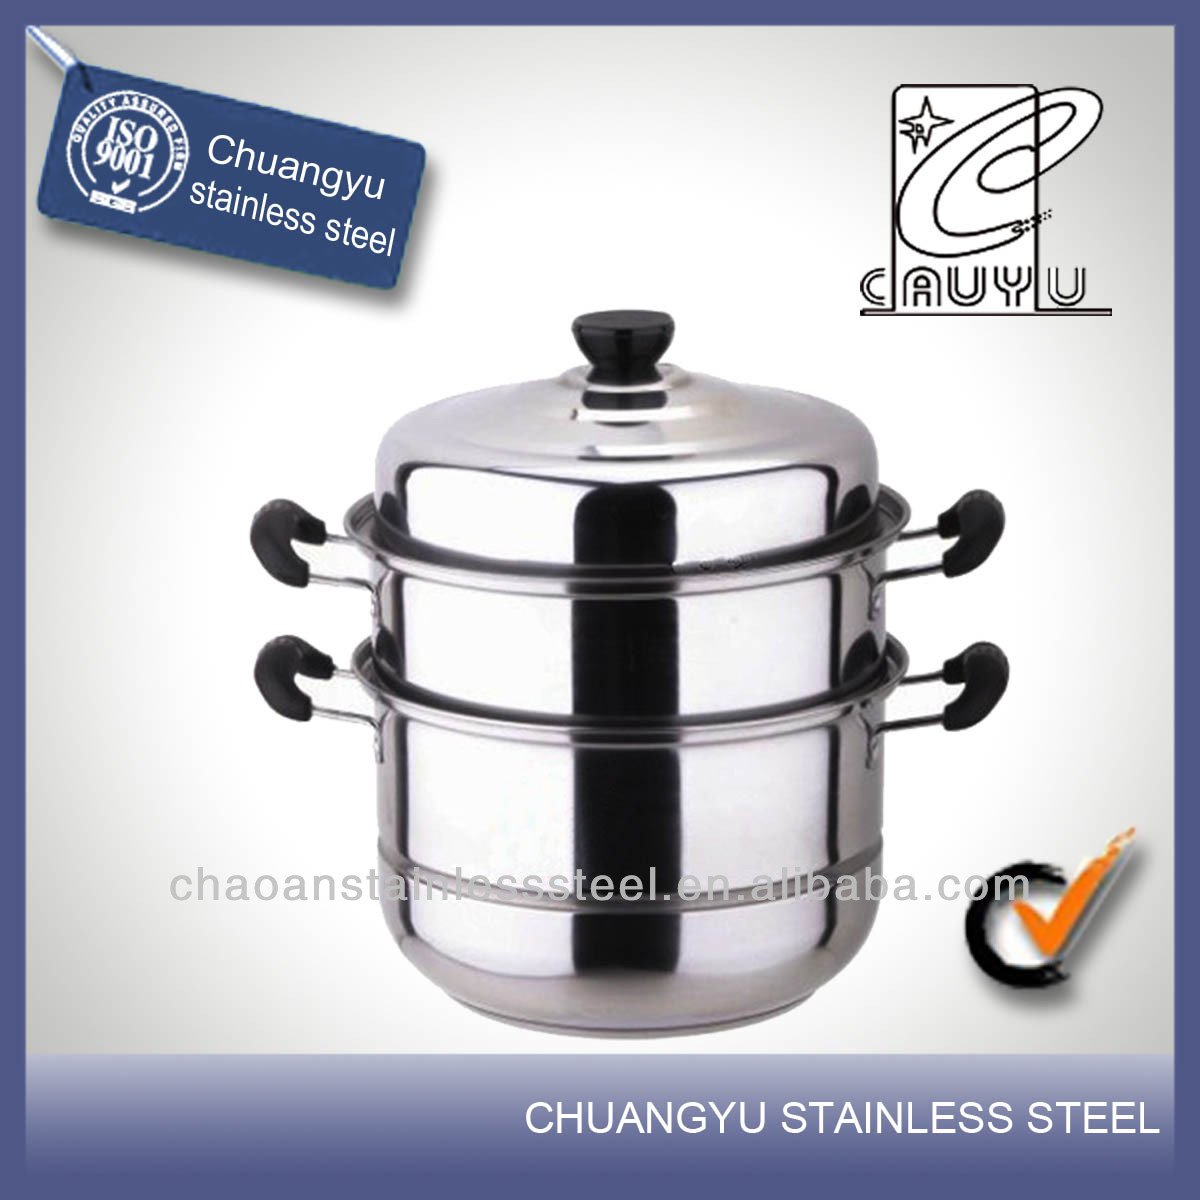 Stainless steel high quality wallpaper steamer on sale